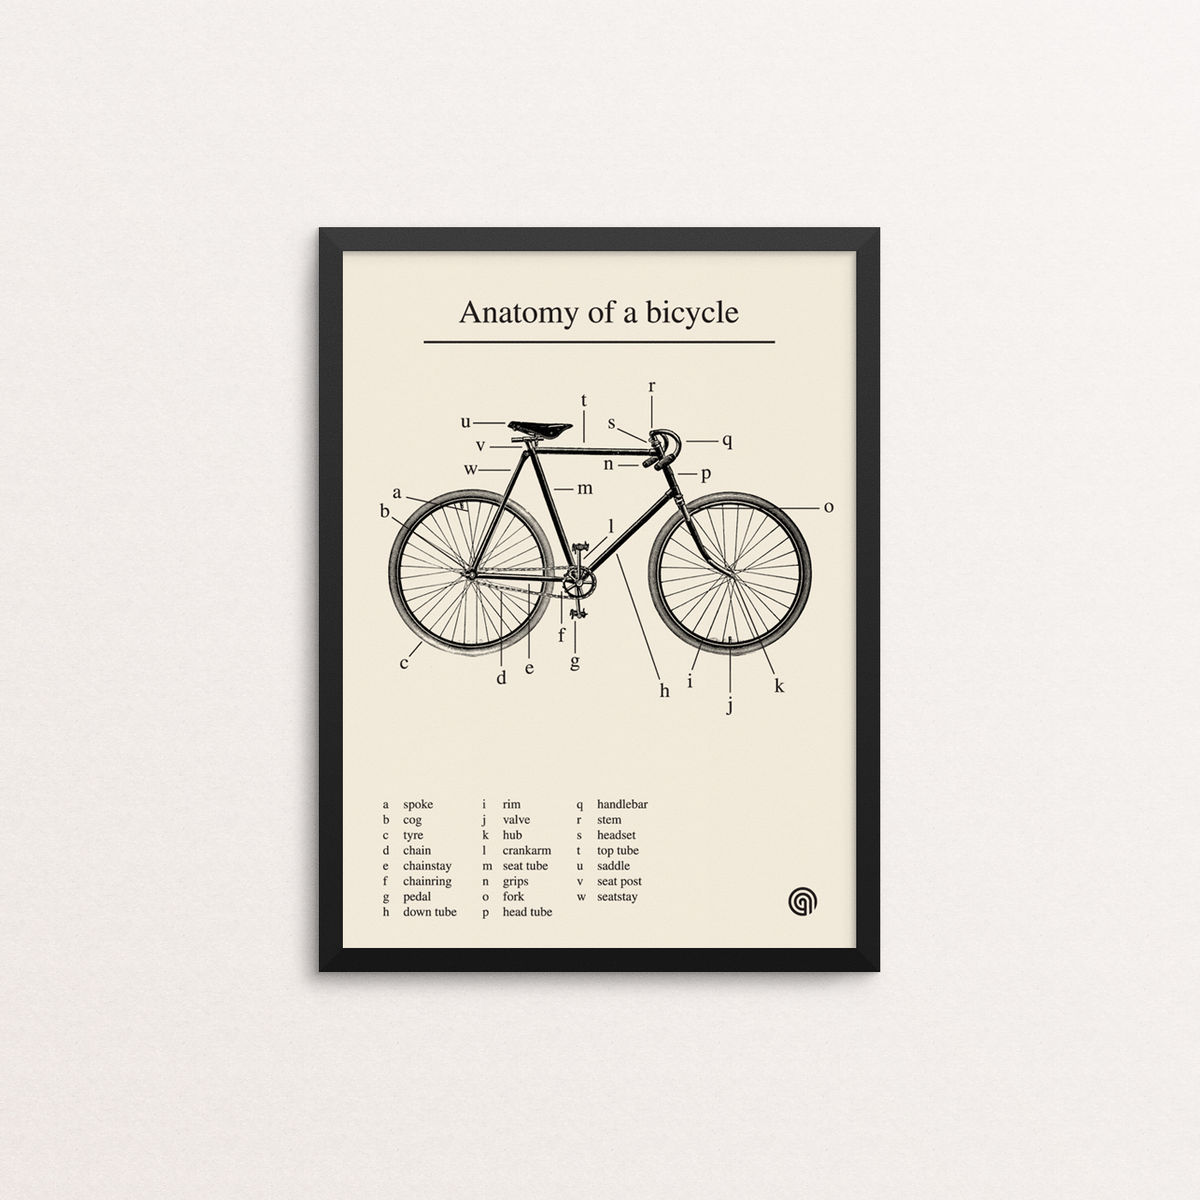 Anatomy of a bicycle - Open Edition - product image